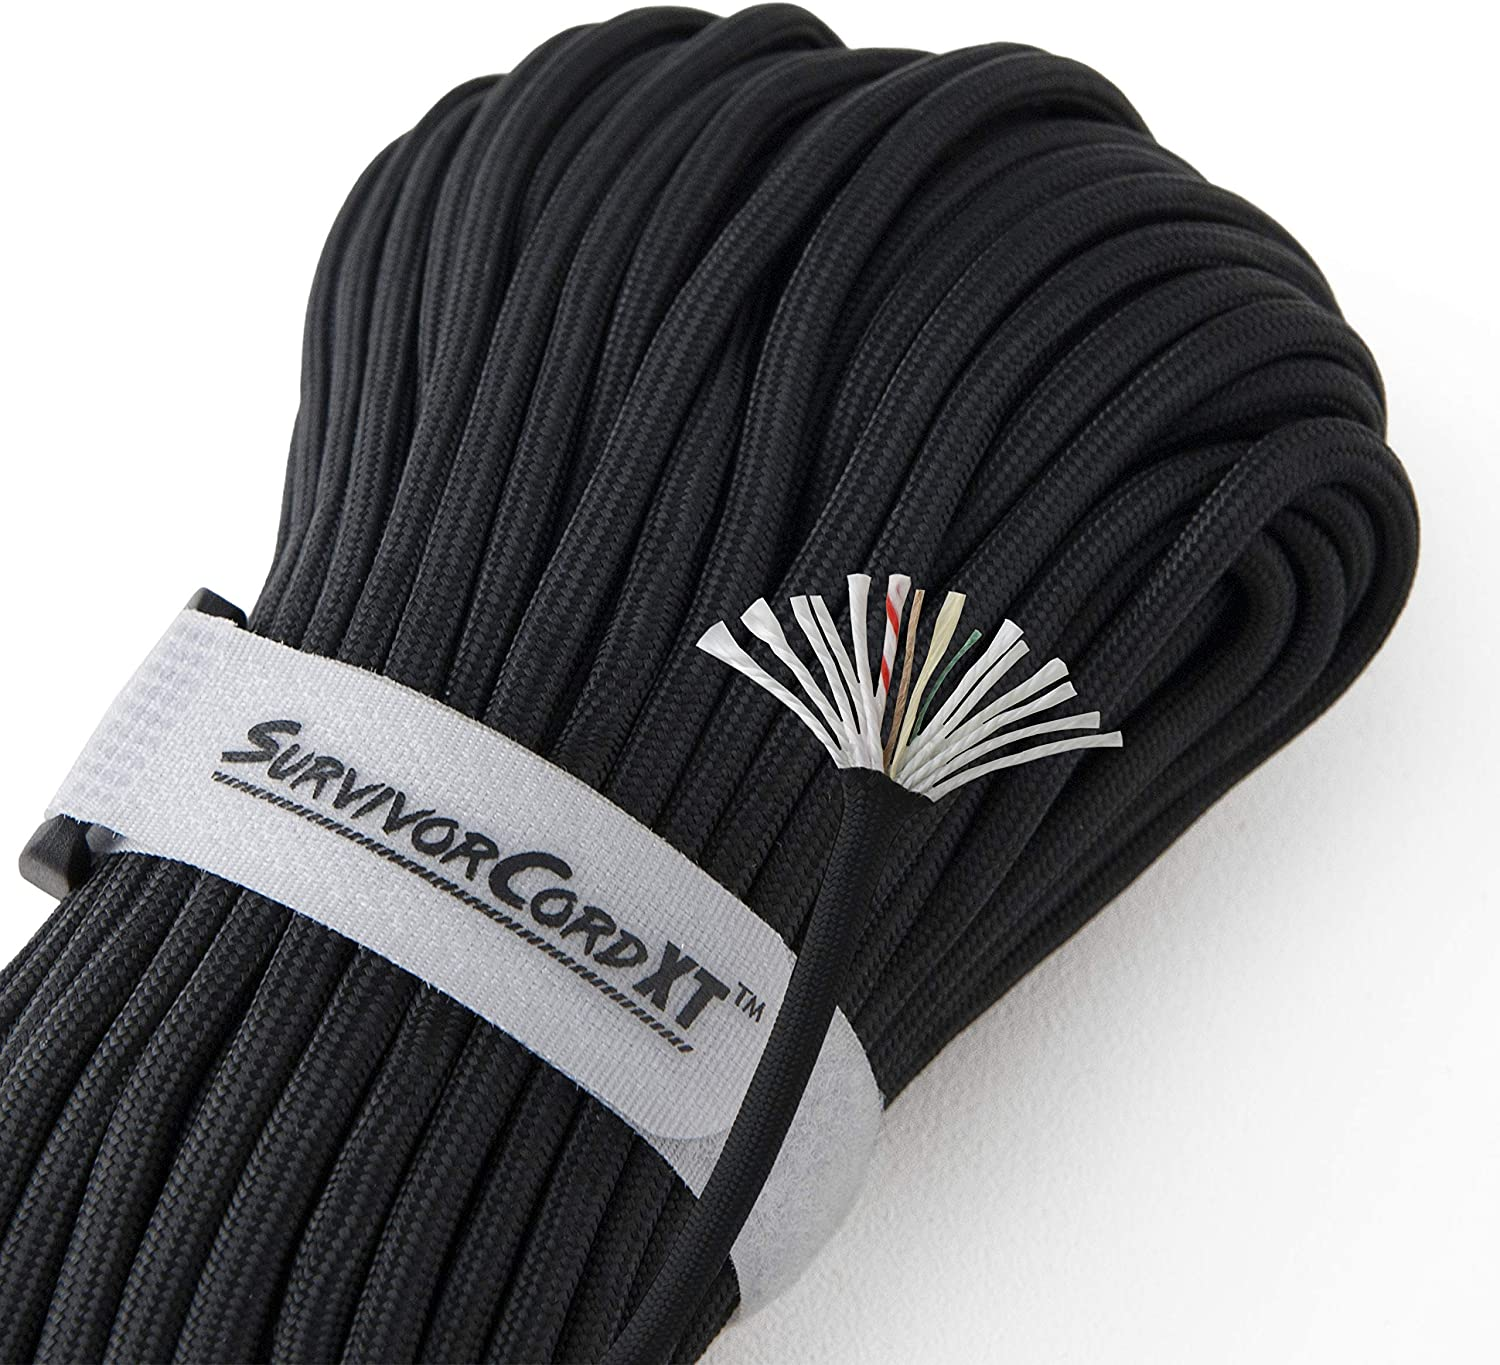 1,000 LB SurvivorCord XT with Integrated Kevlar Thread Braided Fishing Line 7//32 Diameter and Waterproof Fire Tinder. Black 103 FEET Patented Military Type IV 750 Paracord//Parachute Cord